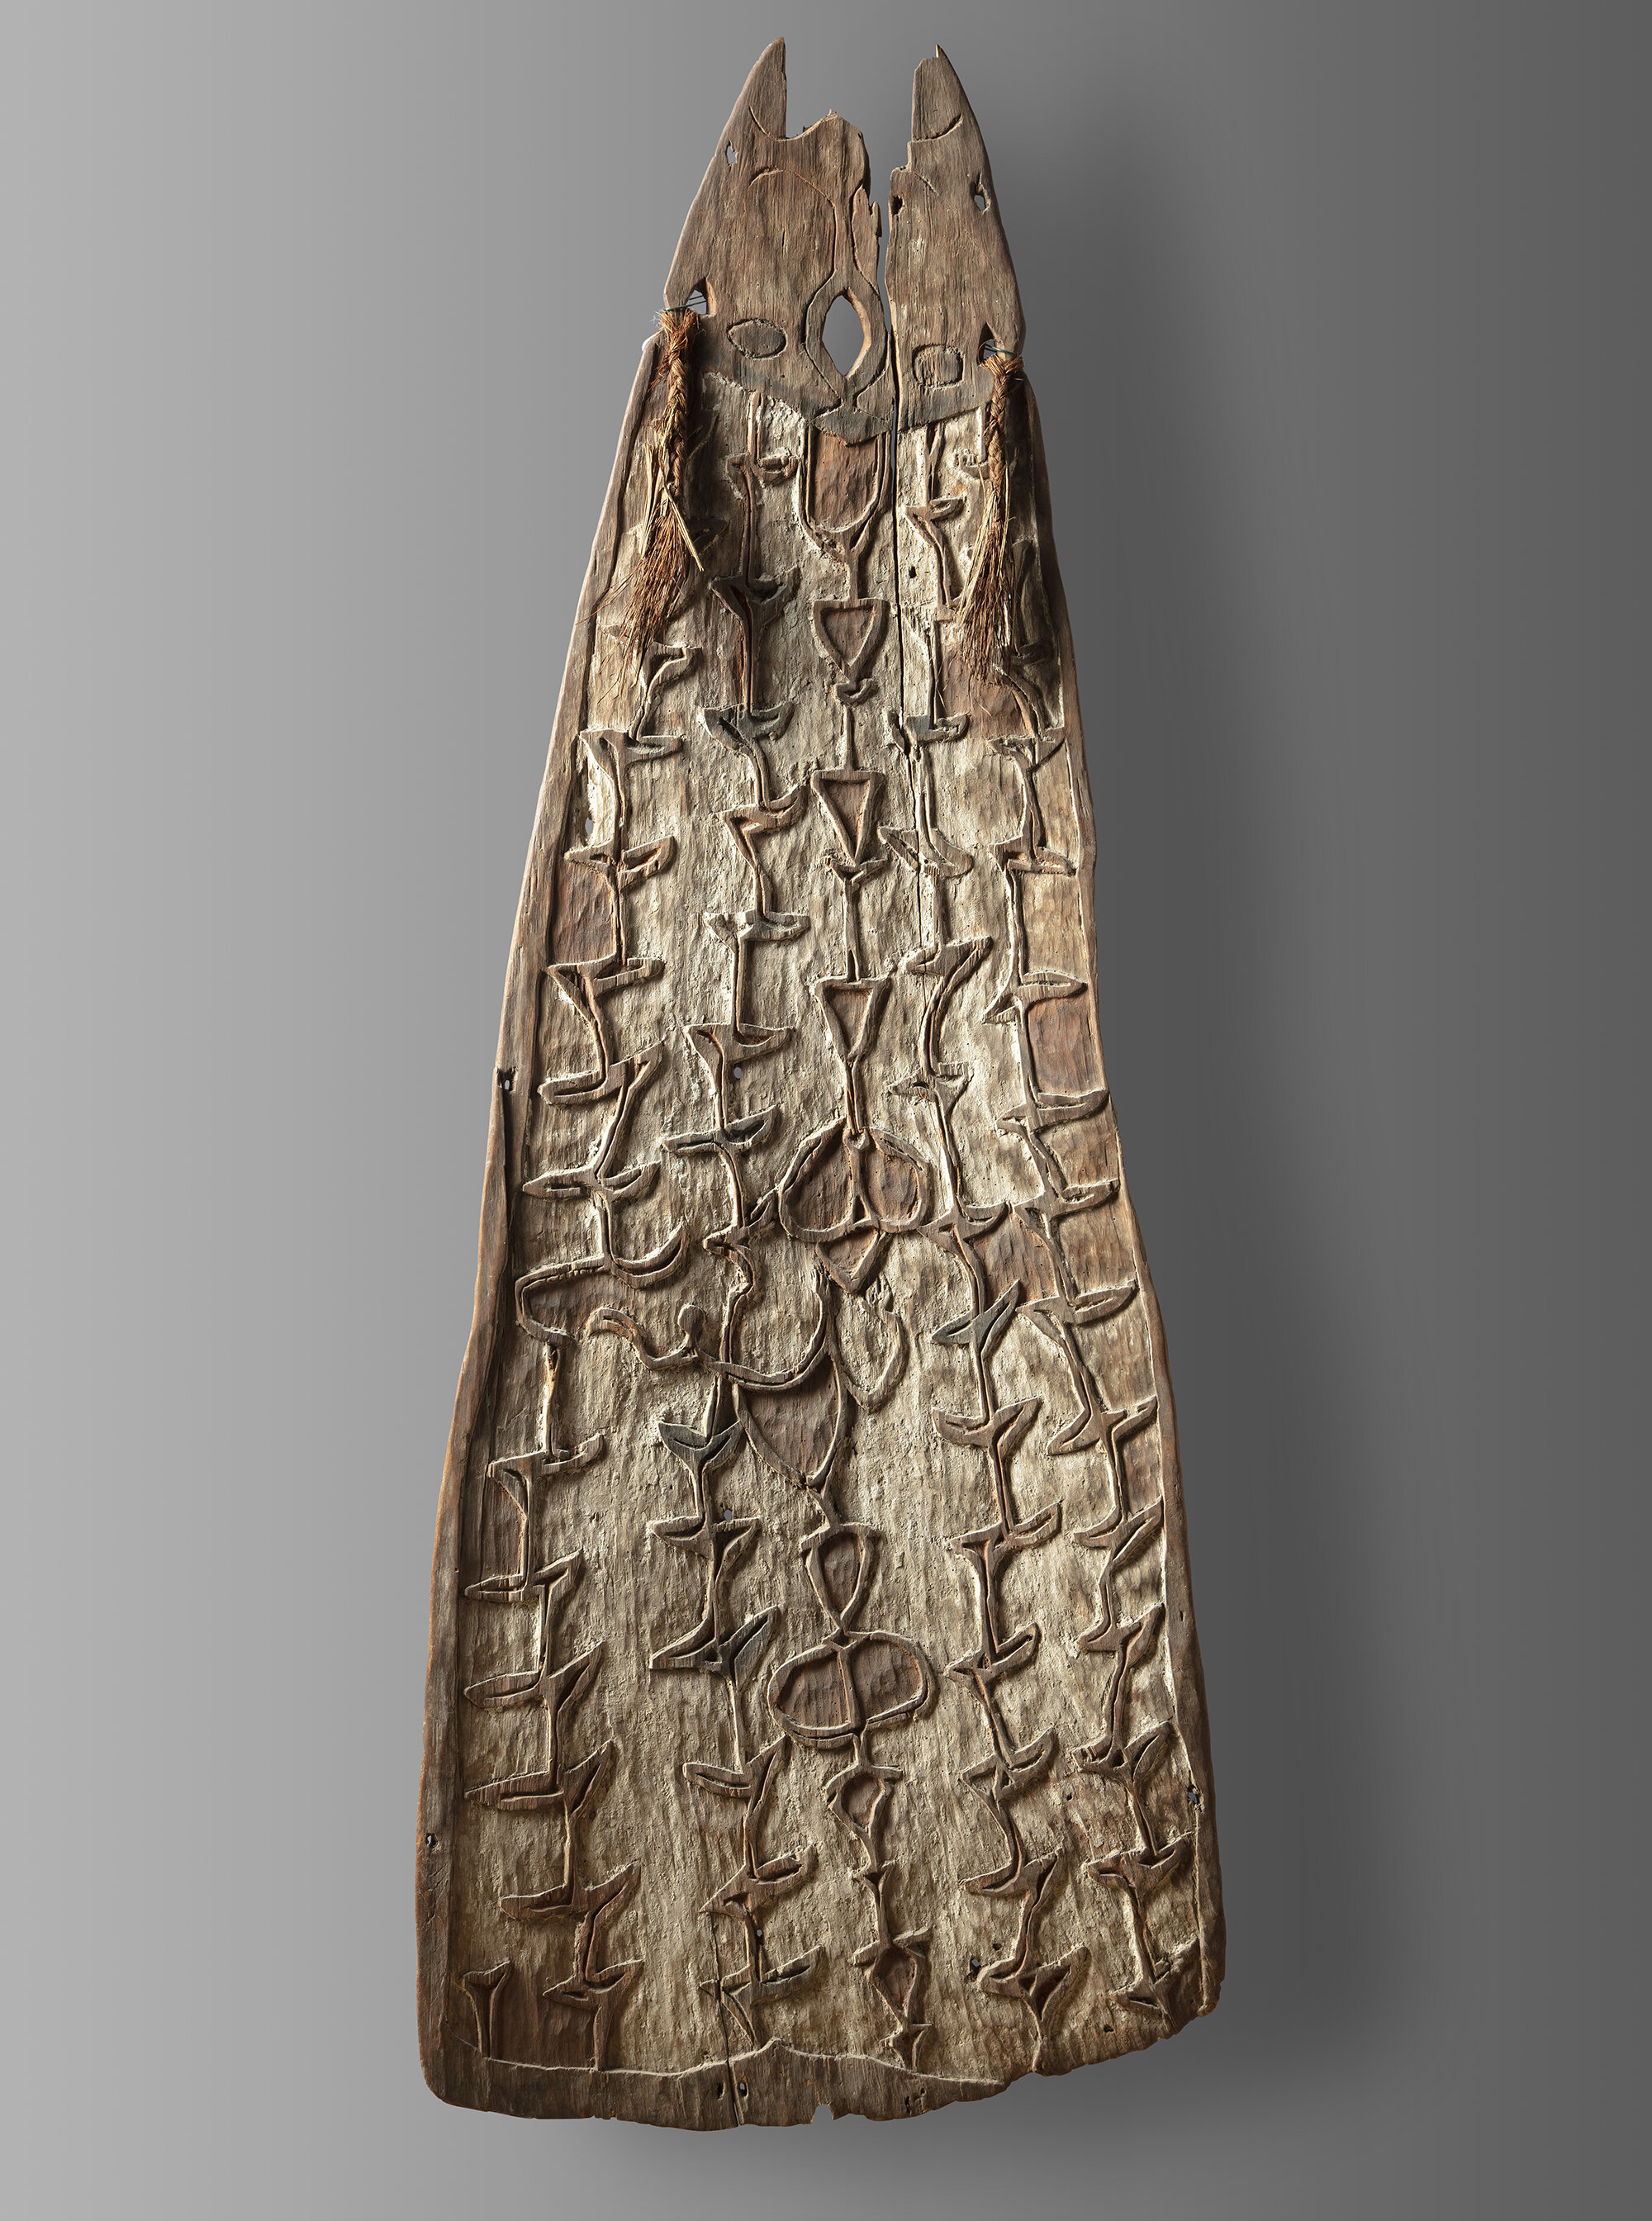 Shield with multiple arrow strikes. Northwest Asmat, Papua, Indonesia. Early 20th Century, collected by the Missionaries of the Sacred Heart (MSC). Private collection. 130 cm Photo: Jan van Esch